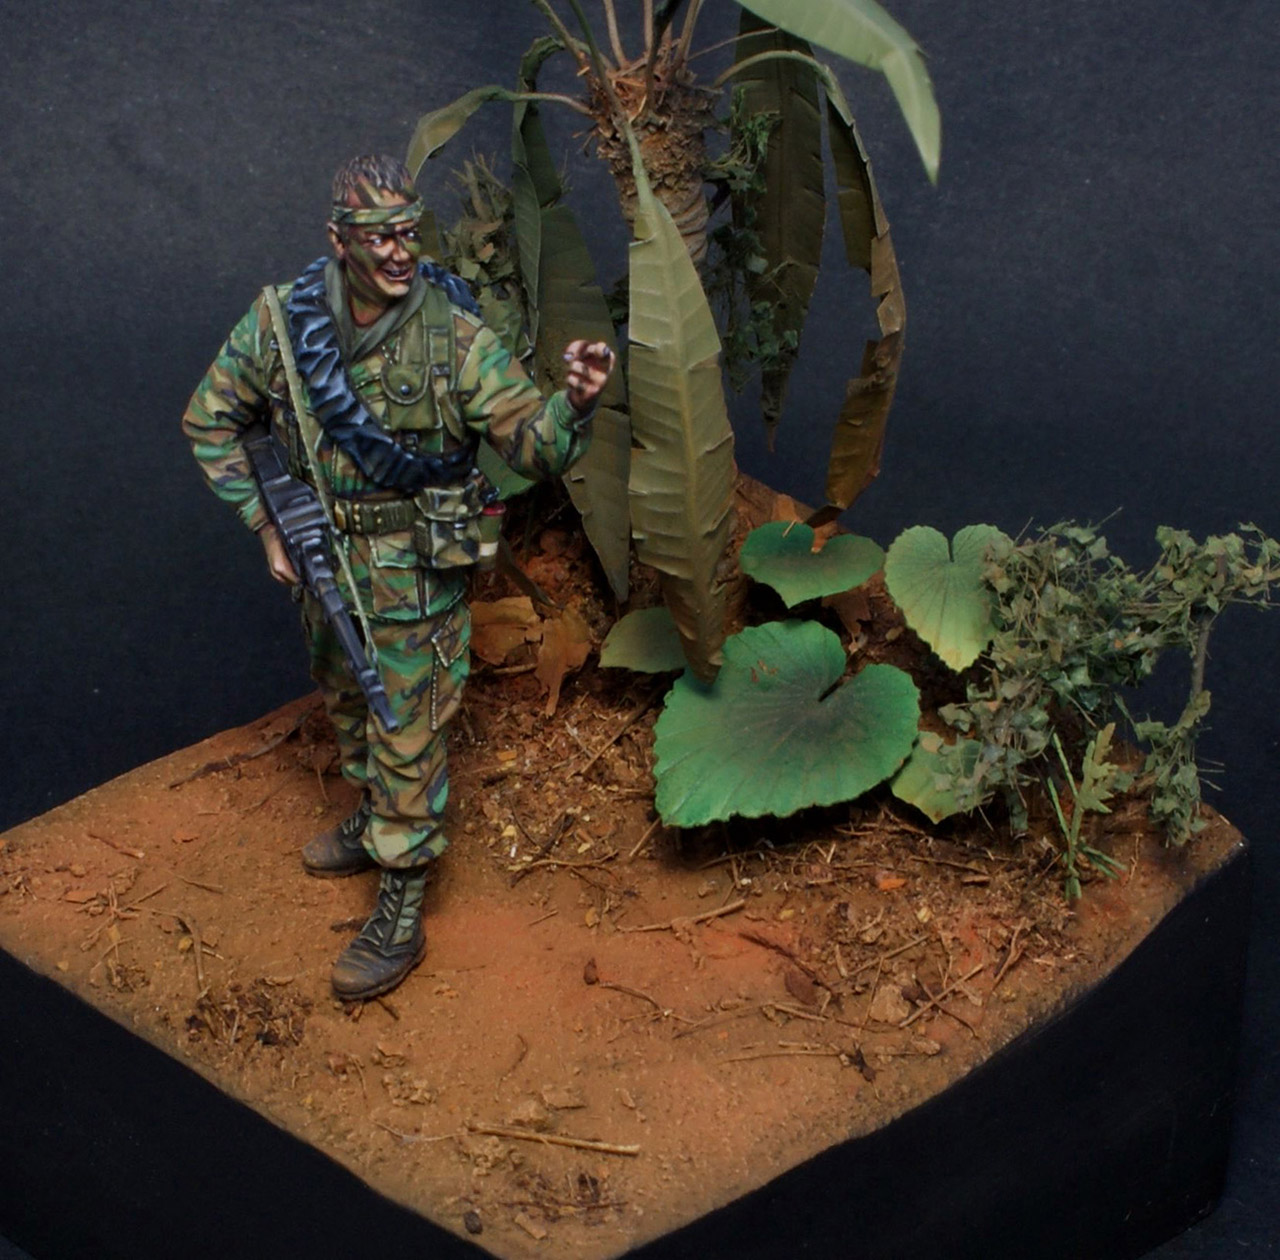 Dioramas and Vignettes: Best wishes, photo #8